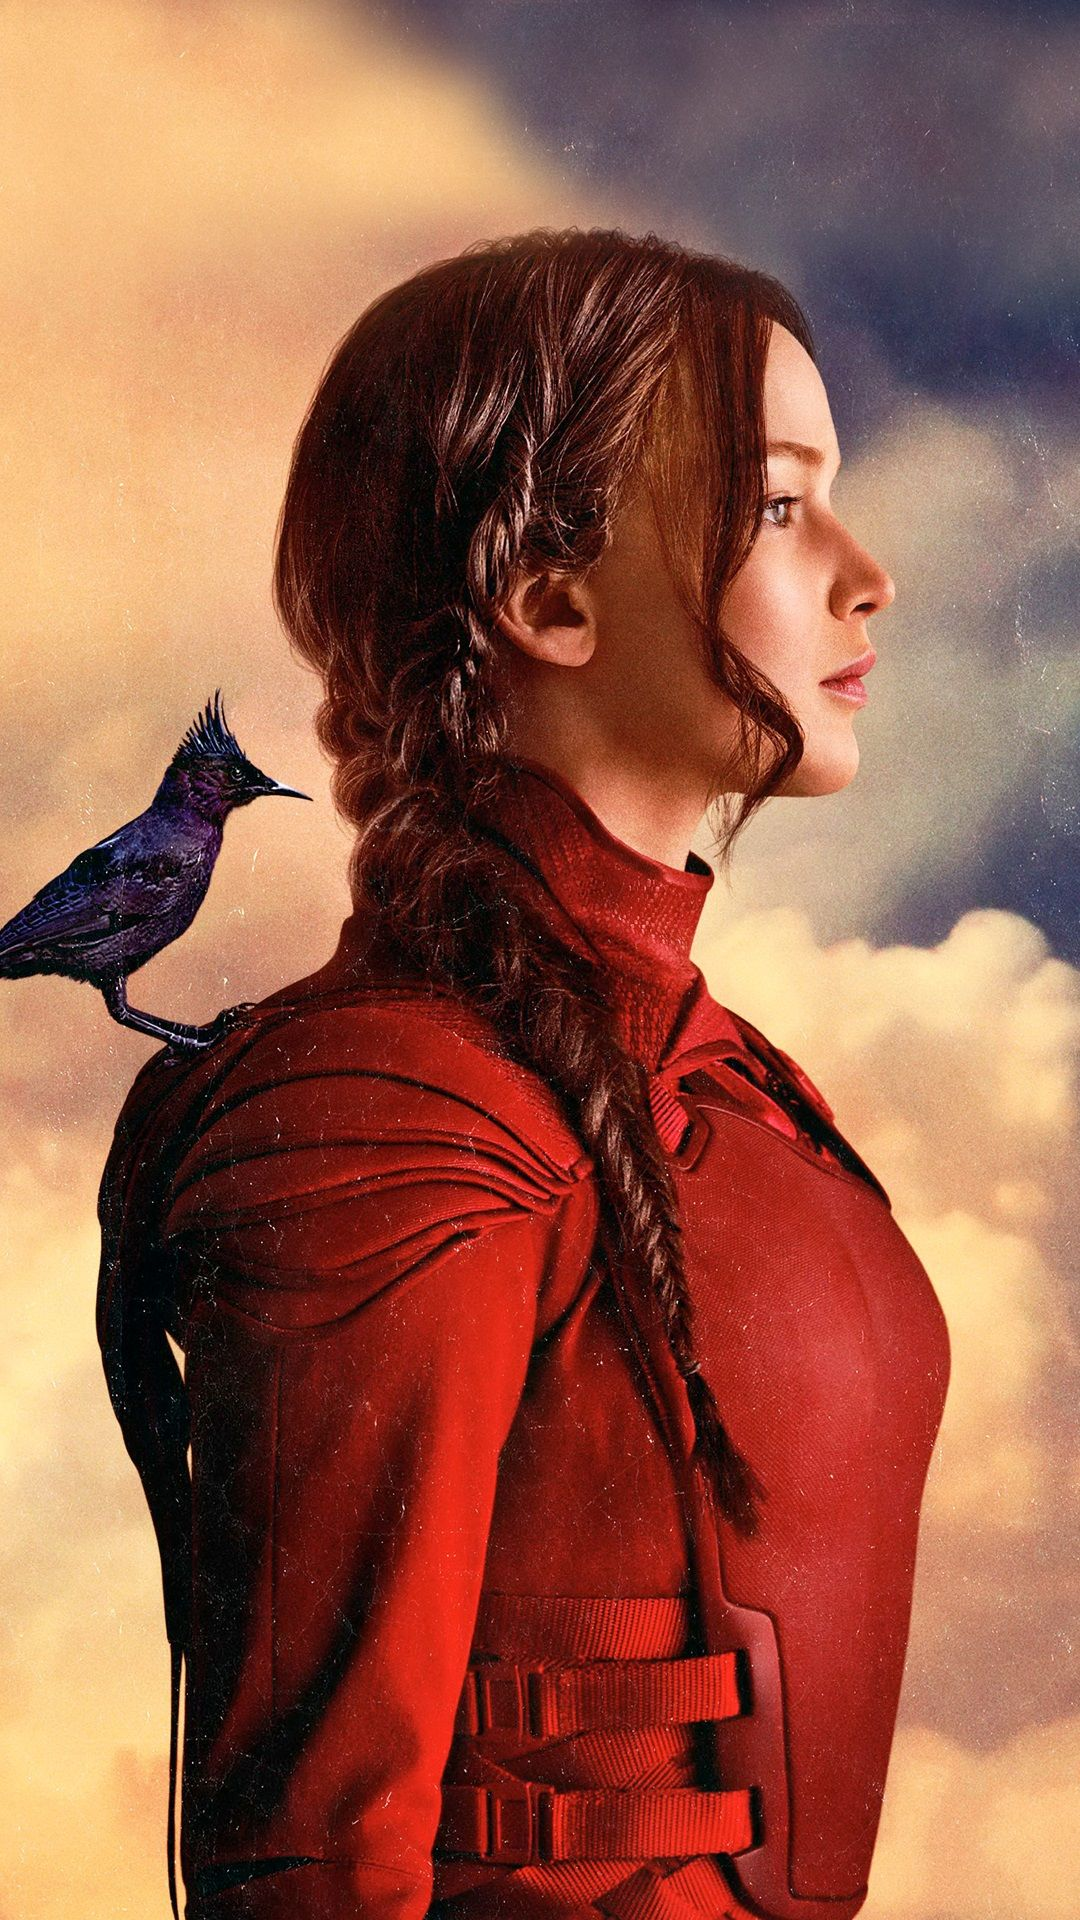 Mockingjay 2 release date in Perth